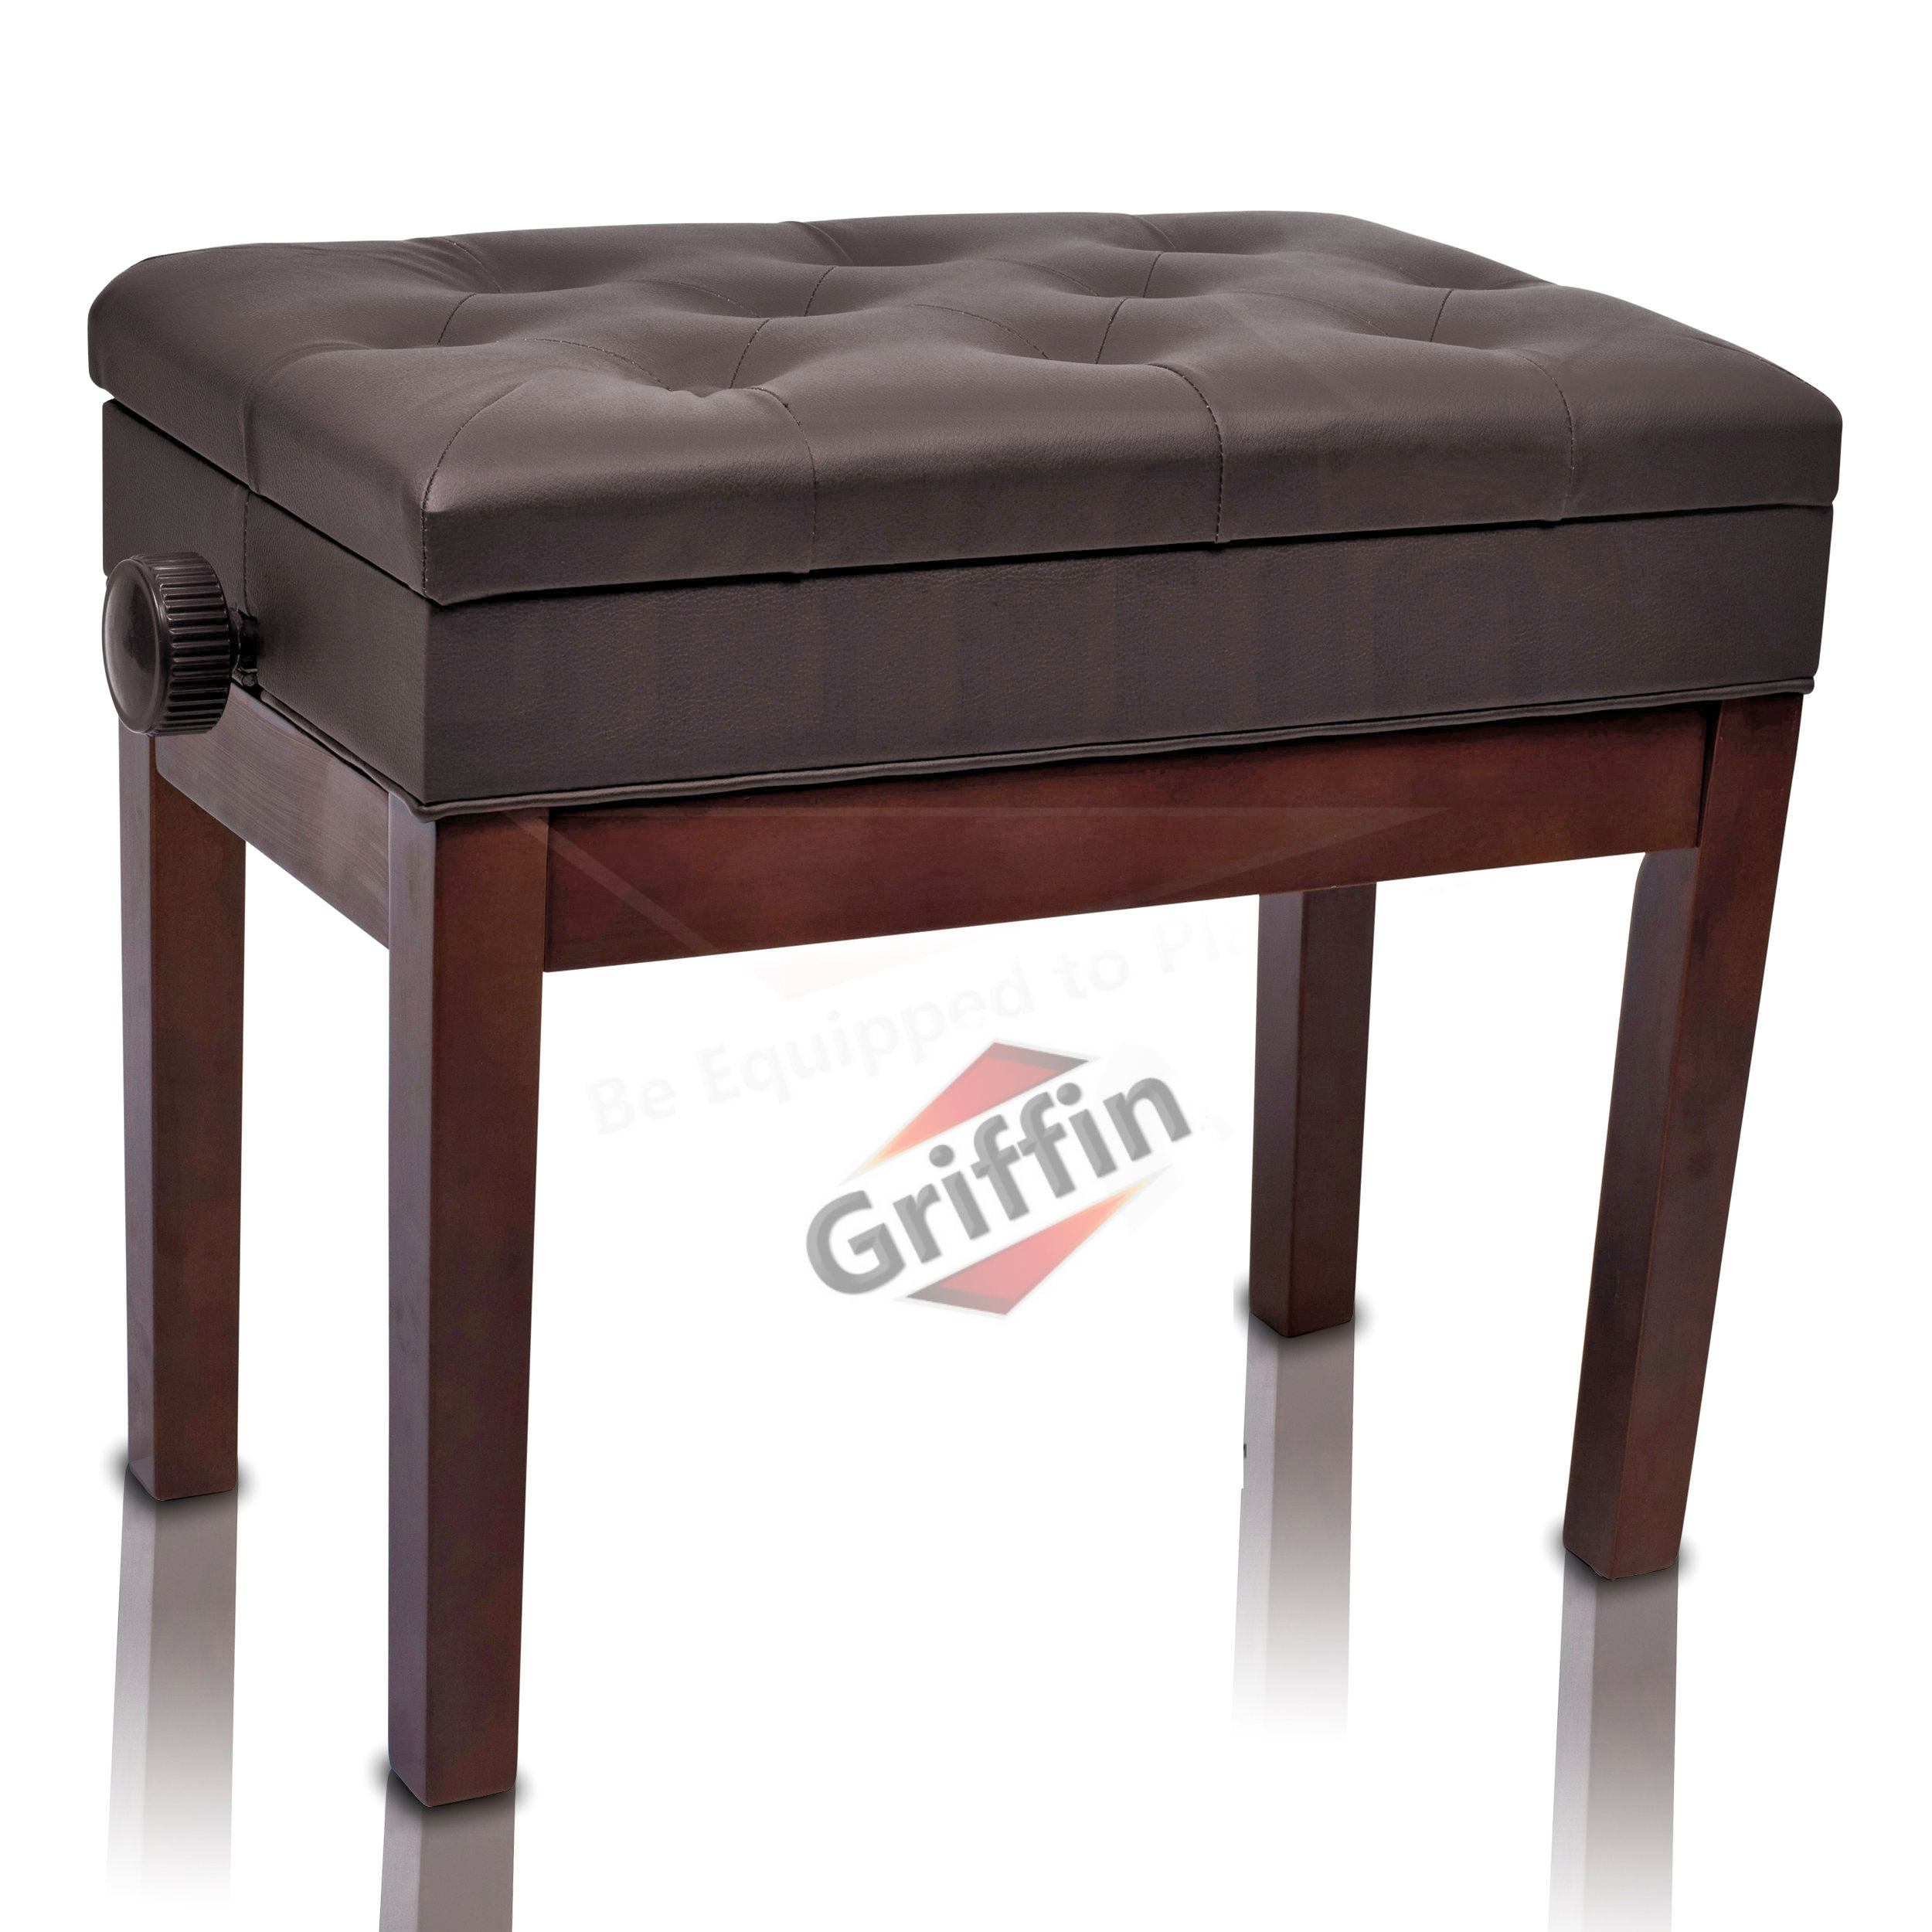 Leather Piano Bench Adjustable Brown Wood with Storage Keyboard Seat by Griffin